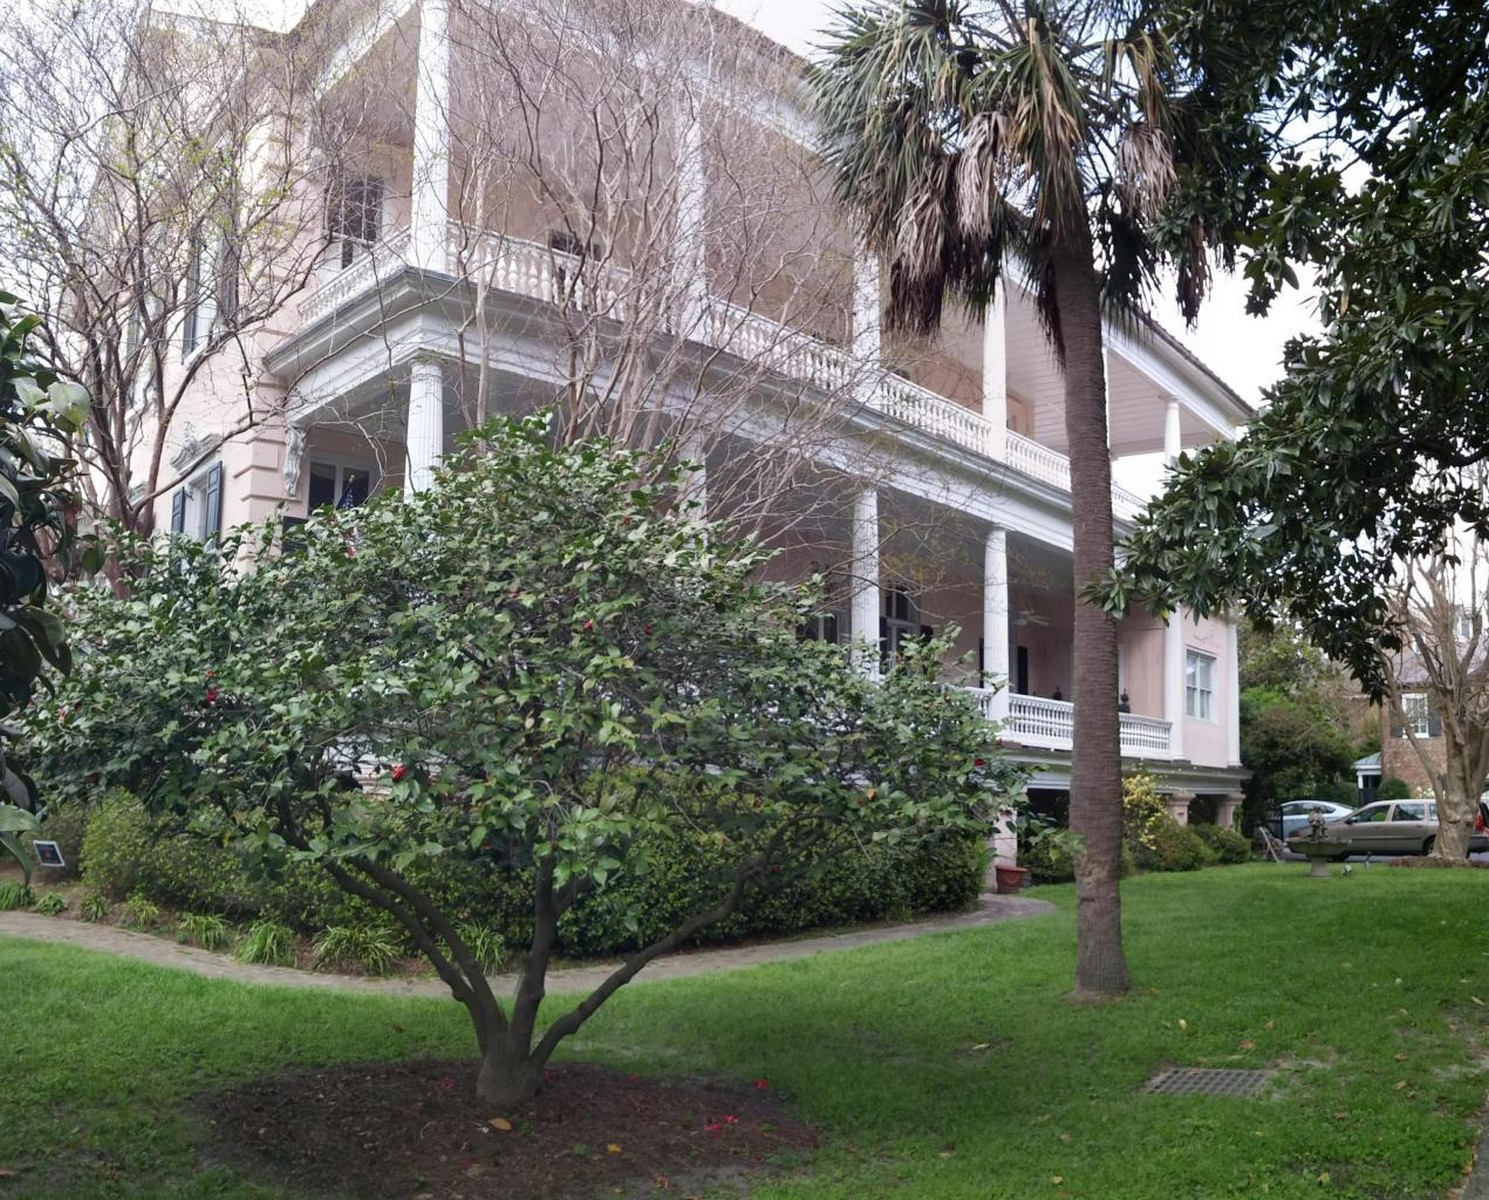 Single Family Home for Sale at Third Floor Condo in the Beauregard House 192 Ashley Avenue Unit B Charleston, South Carolina 29403 United States